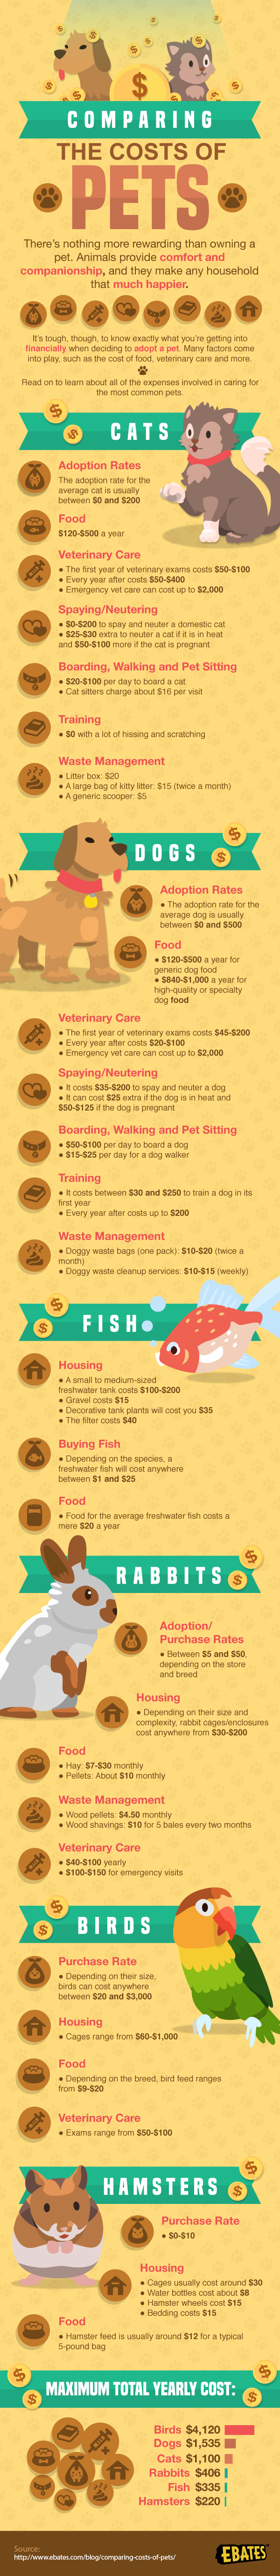 Comparing the Costs of Pets